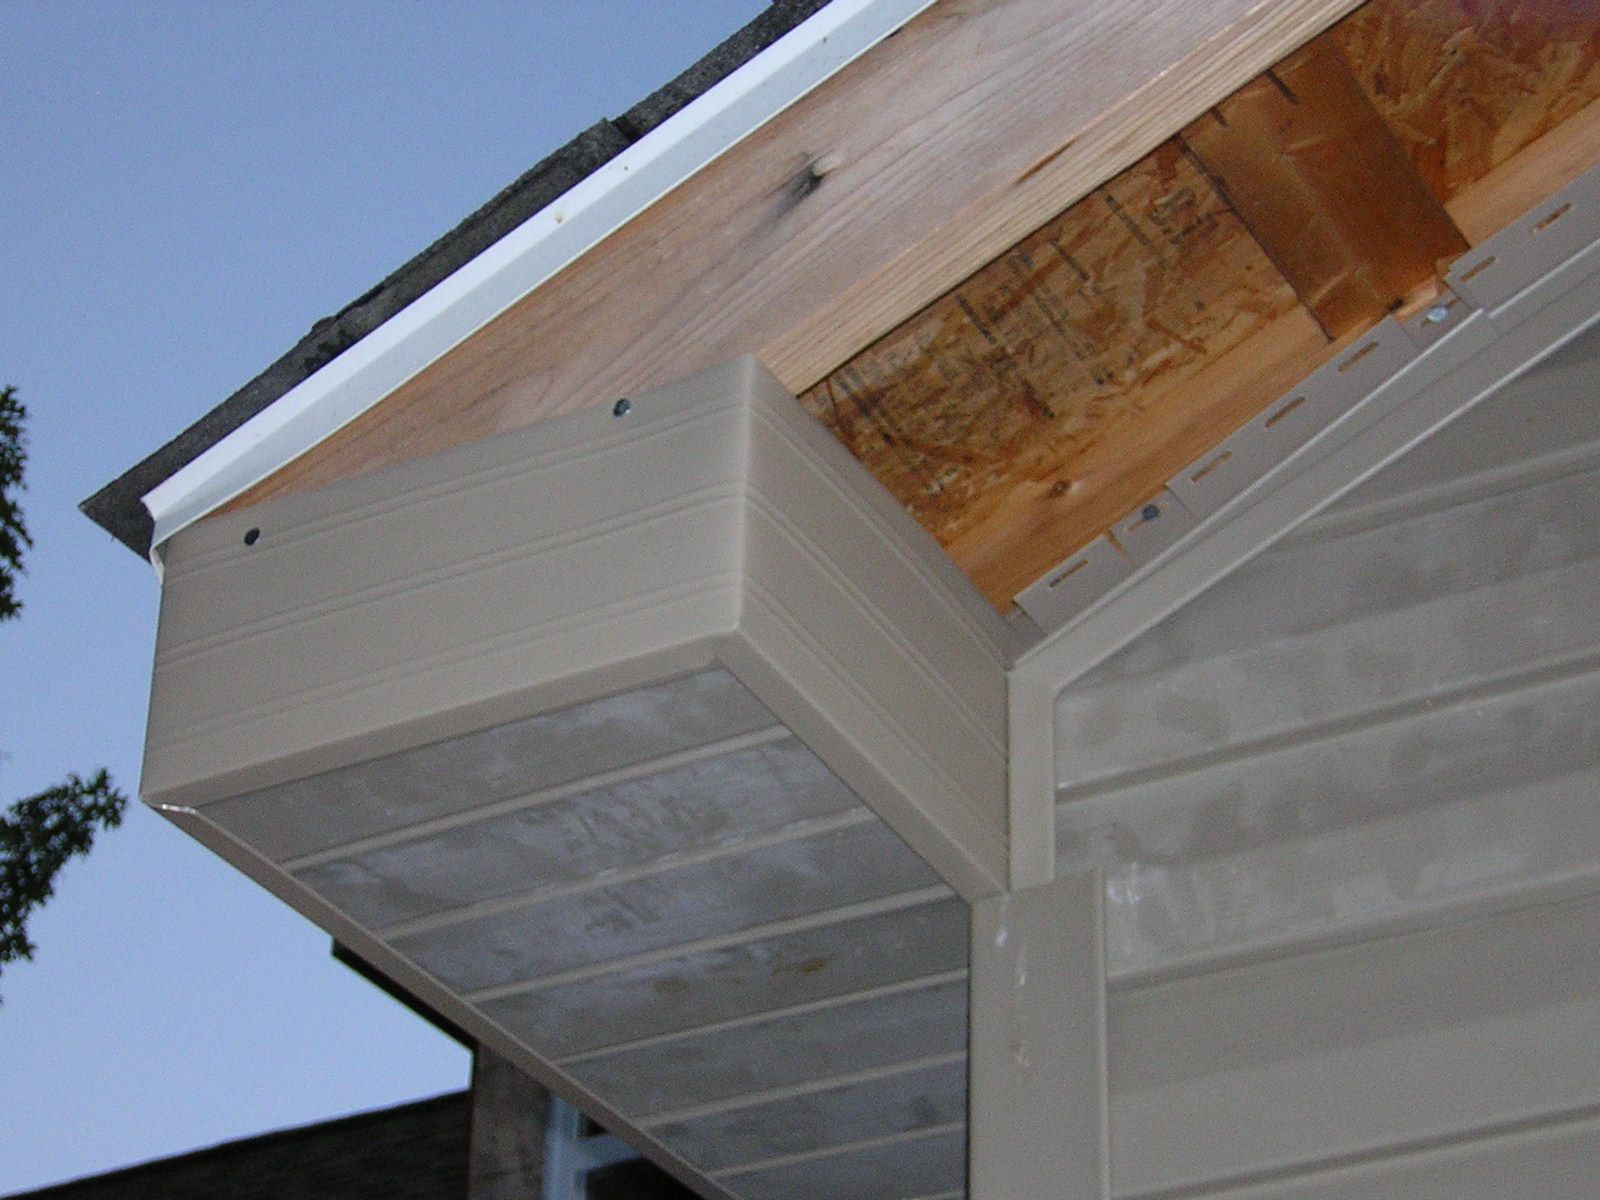 Gable End Soffit Box Doors Windows And Exterior Trim